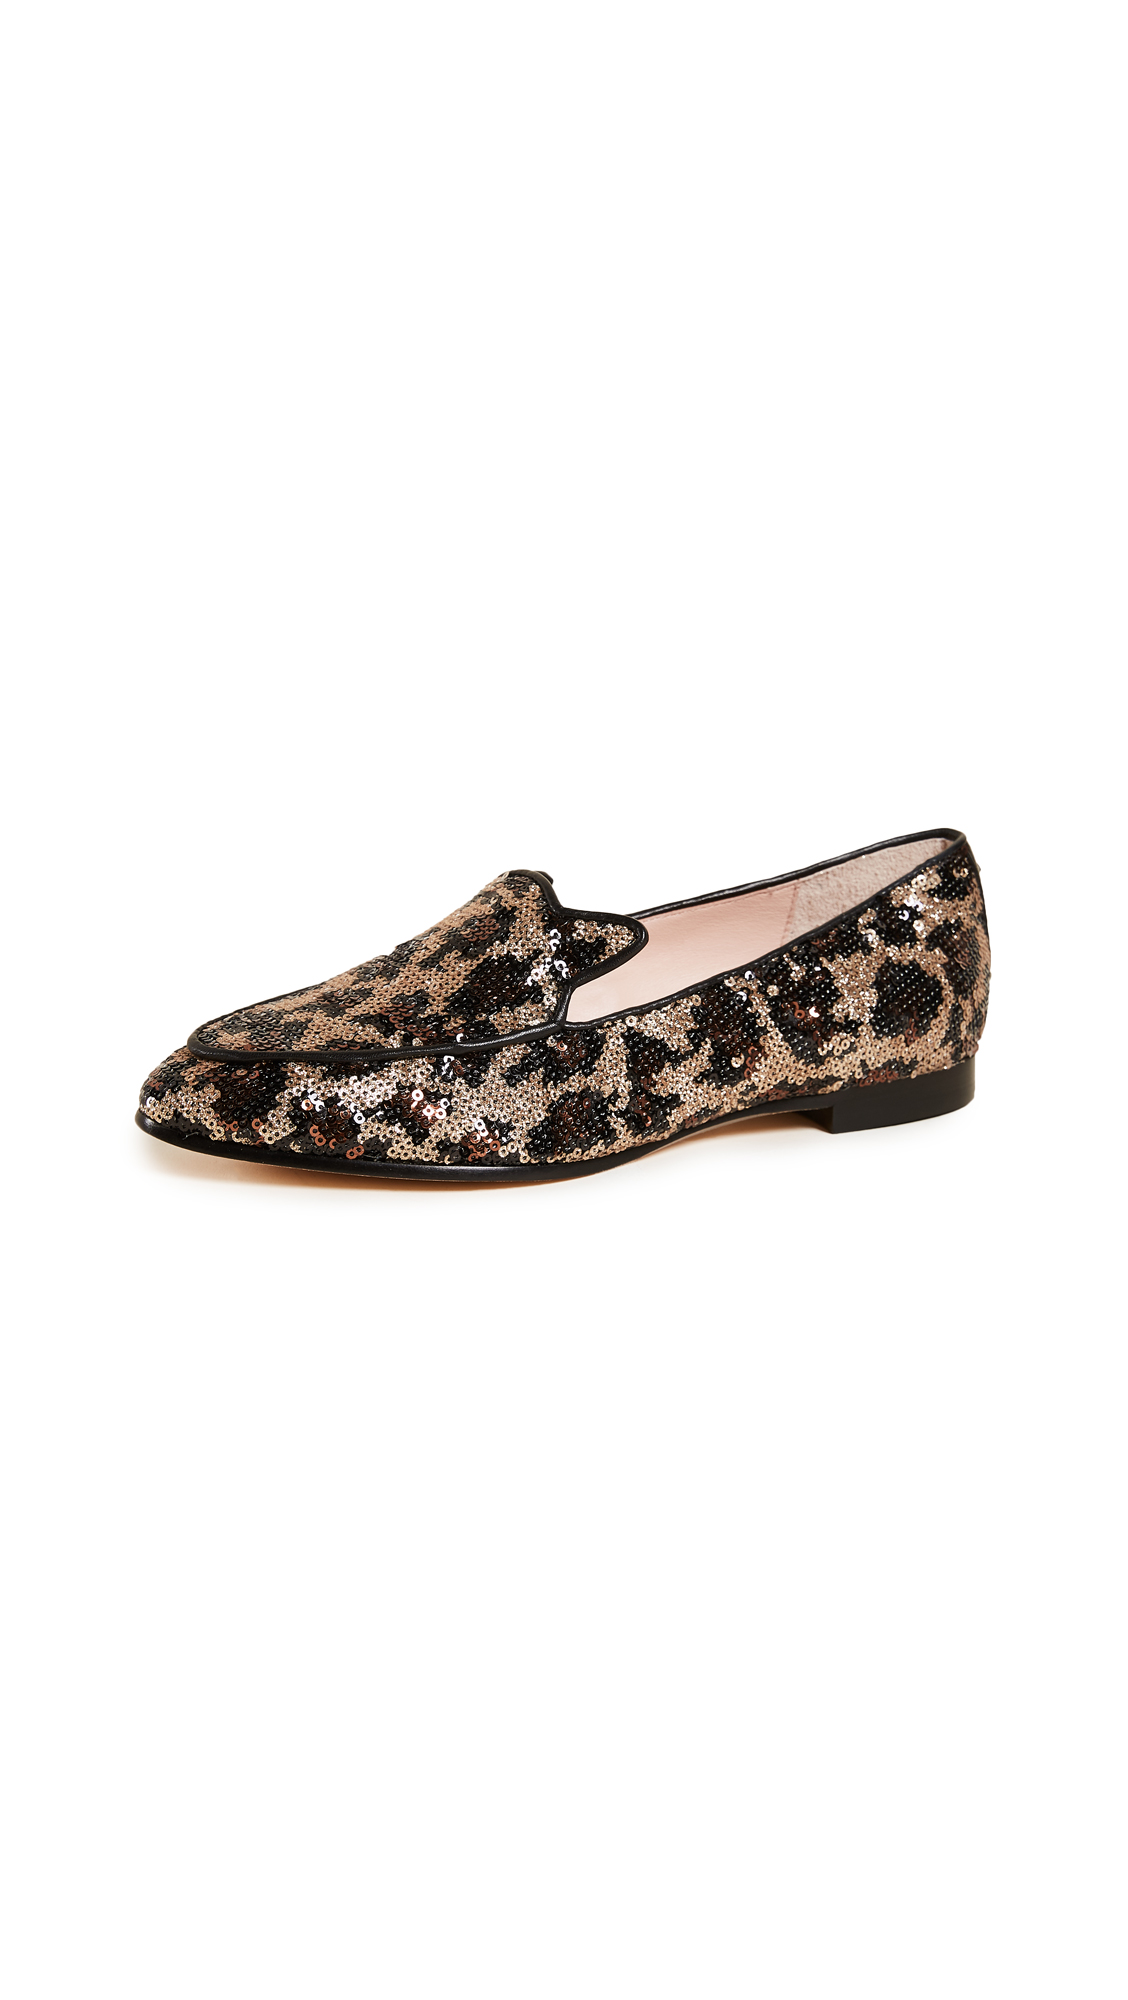 Kate Spade New York Caty Sequin Slip On Loafers - Black/Gold Leopard